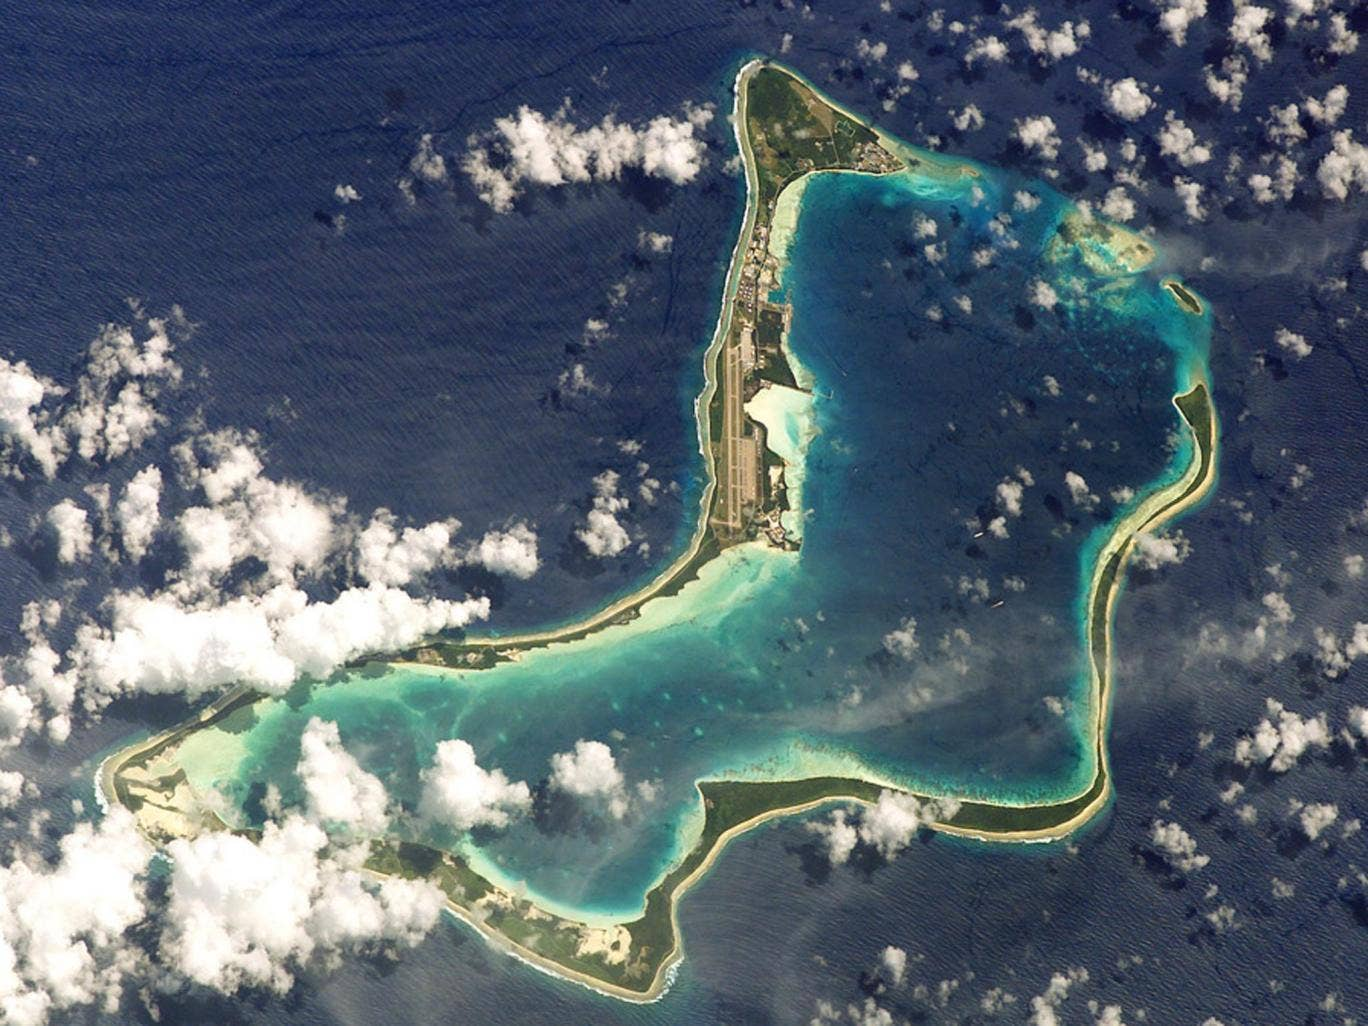 The British-owned Diego Garcia, where the American military poured hundreds of tonnes of human sewage